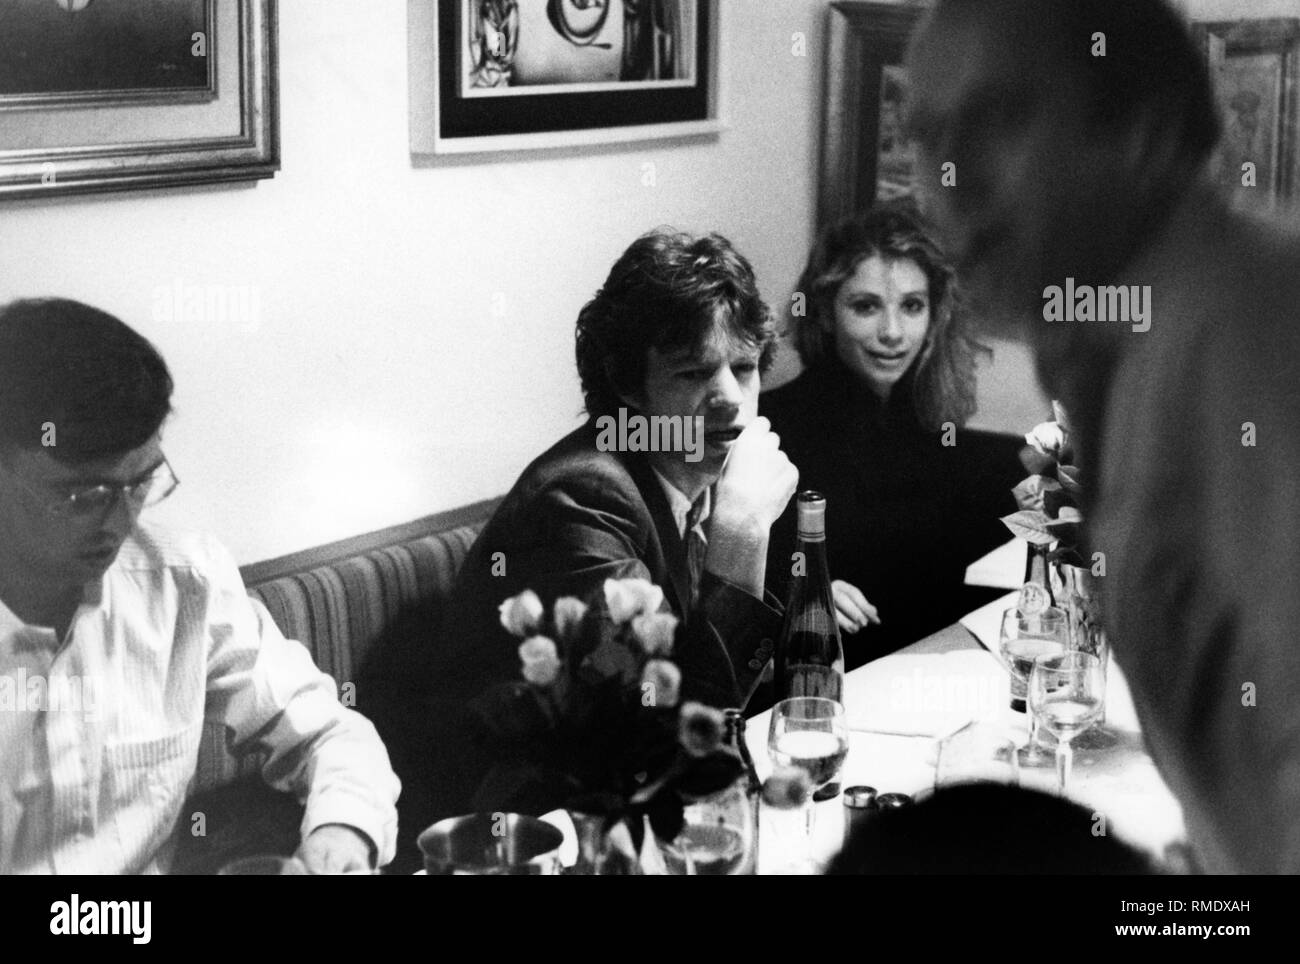 Mick Jagger, a musician, Great Britain, 'The Rolling Stones', in the restaurant 'Tivoli' in Munich. - Stock Image